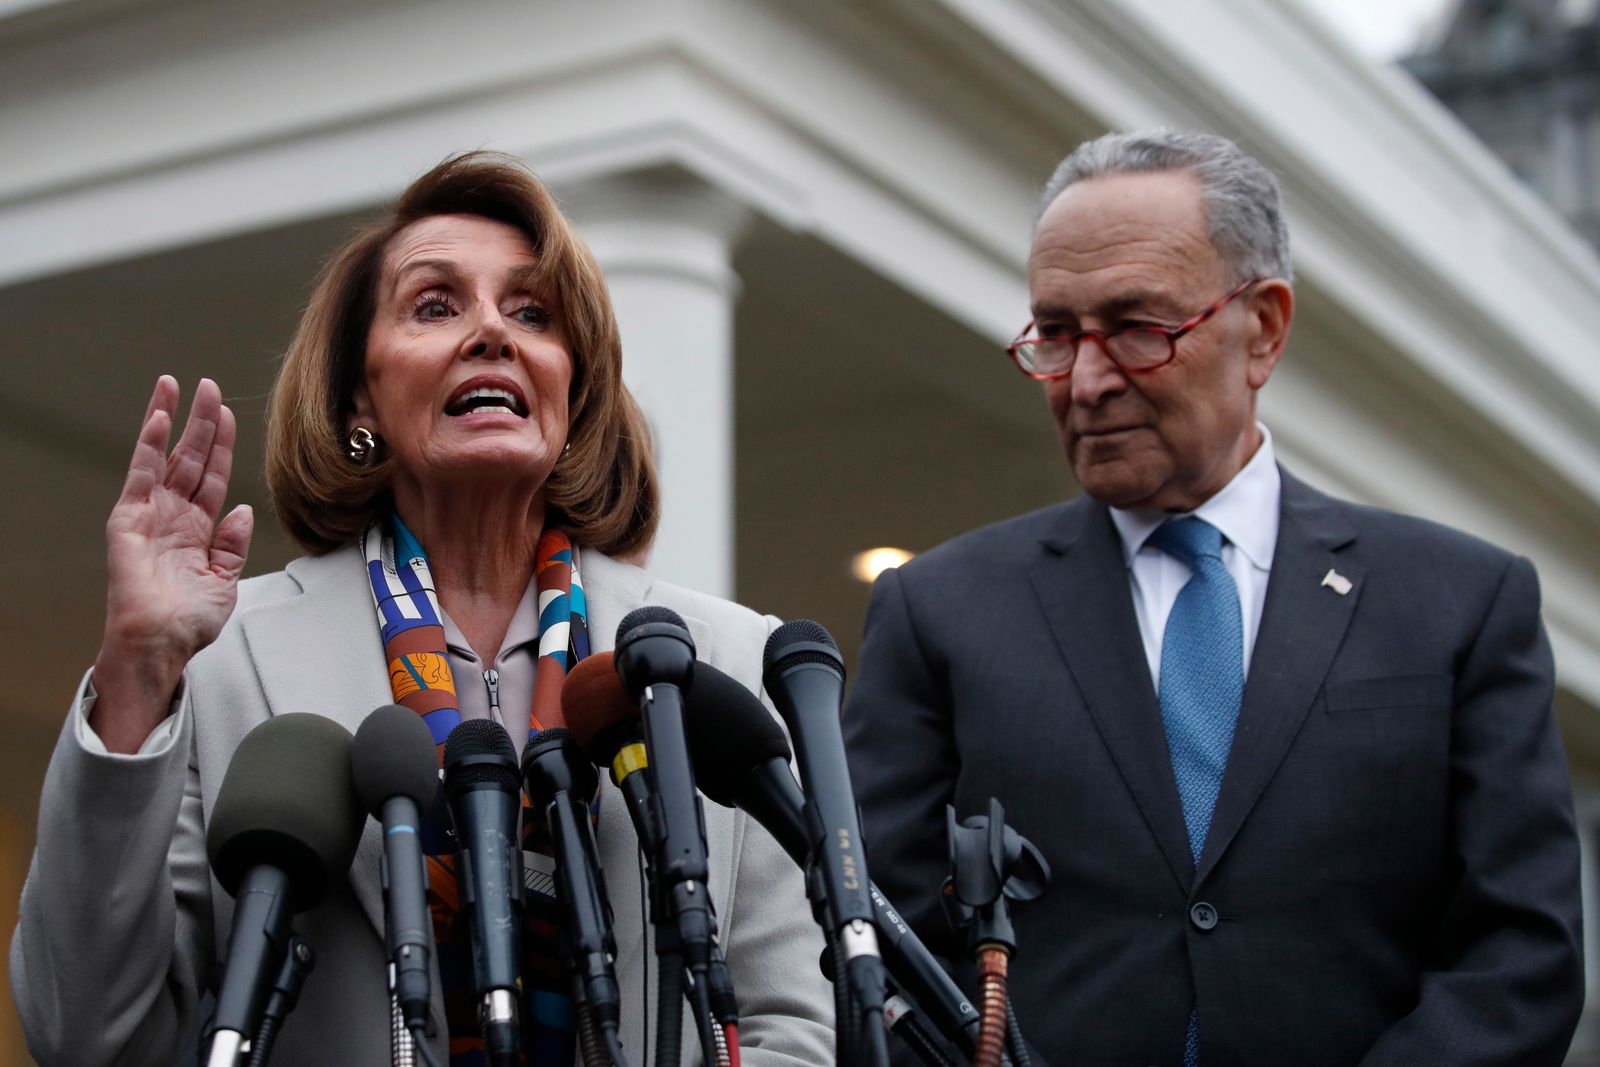 House Democratic leader Nancy Pelosi of California, left, the House Speaker-designate, and Senate Minority Leader Chuck Schumer, D-N.Y., speak to the media after meeting with President Donald Trump, Wednesday, Jan. 2, 2019. (AP Photo/Jacquelyn Martin)